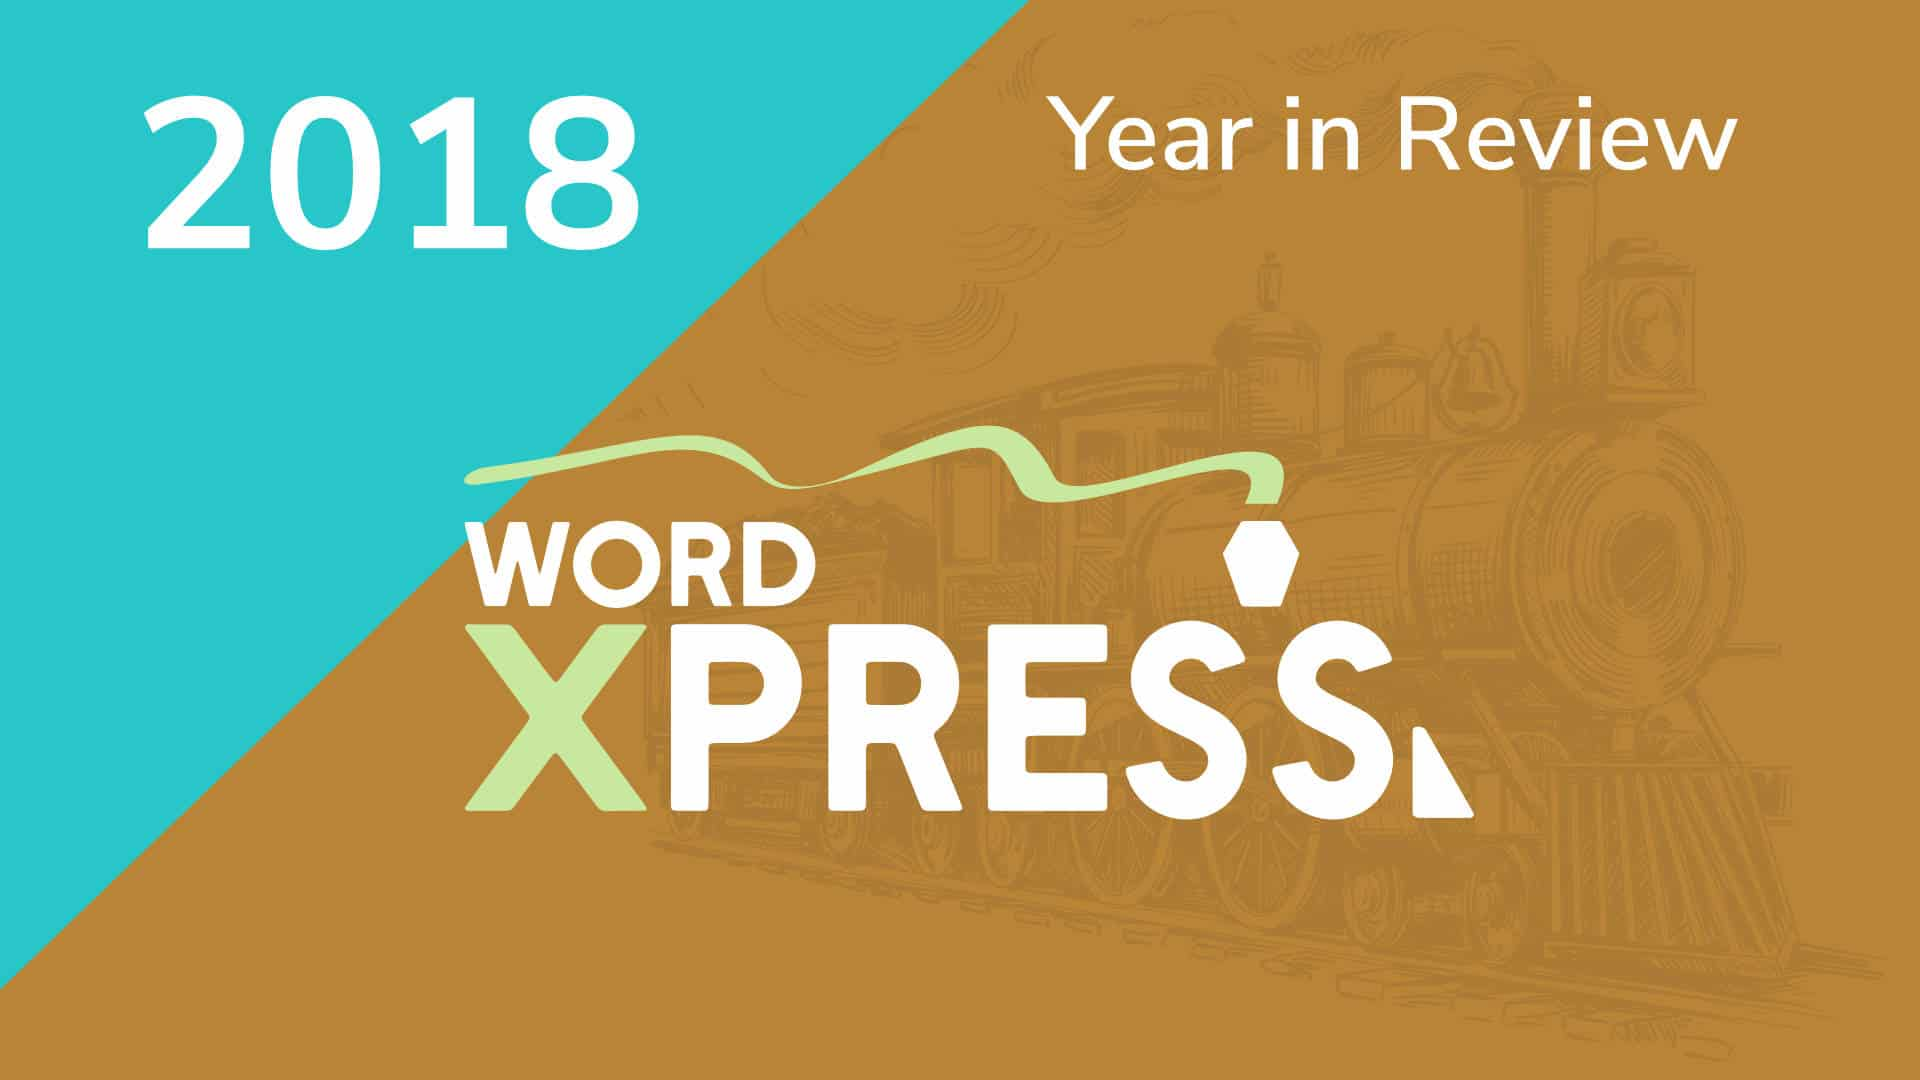 Wordxpress 2018 year review